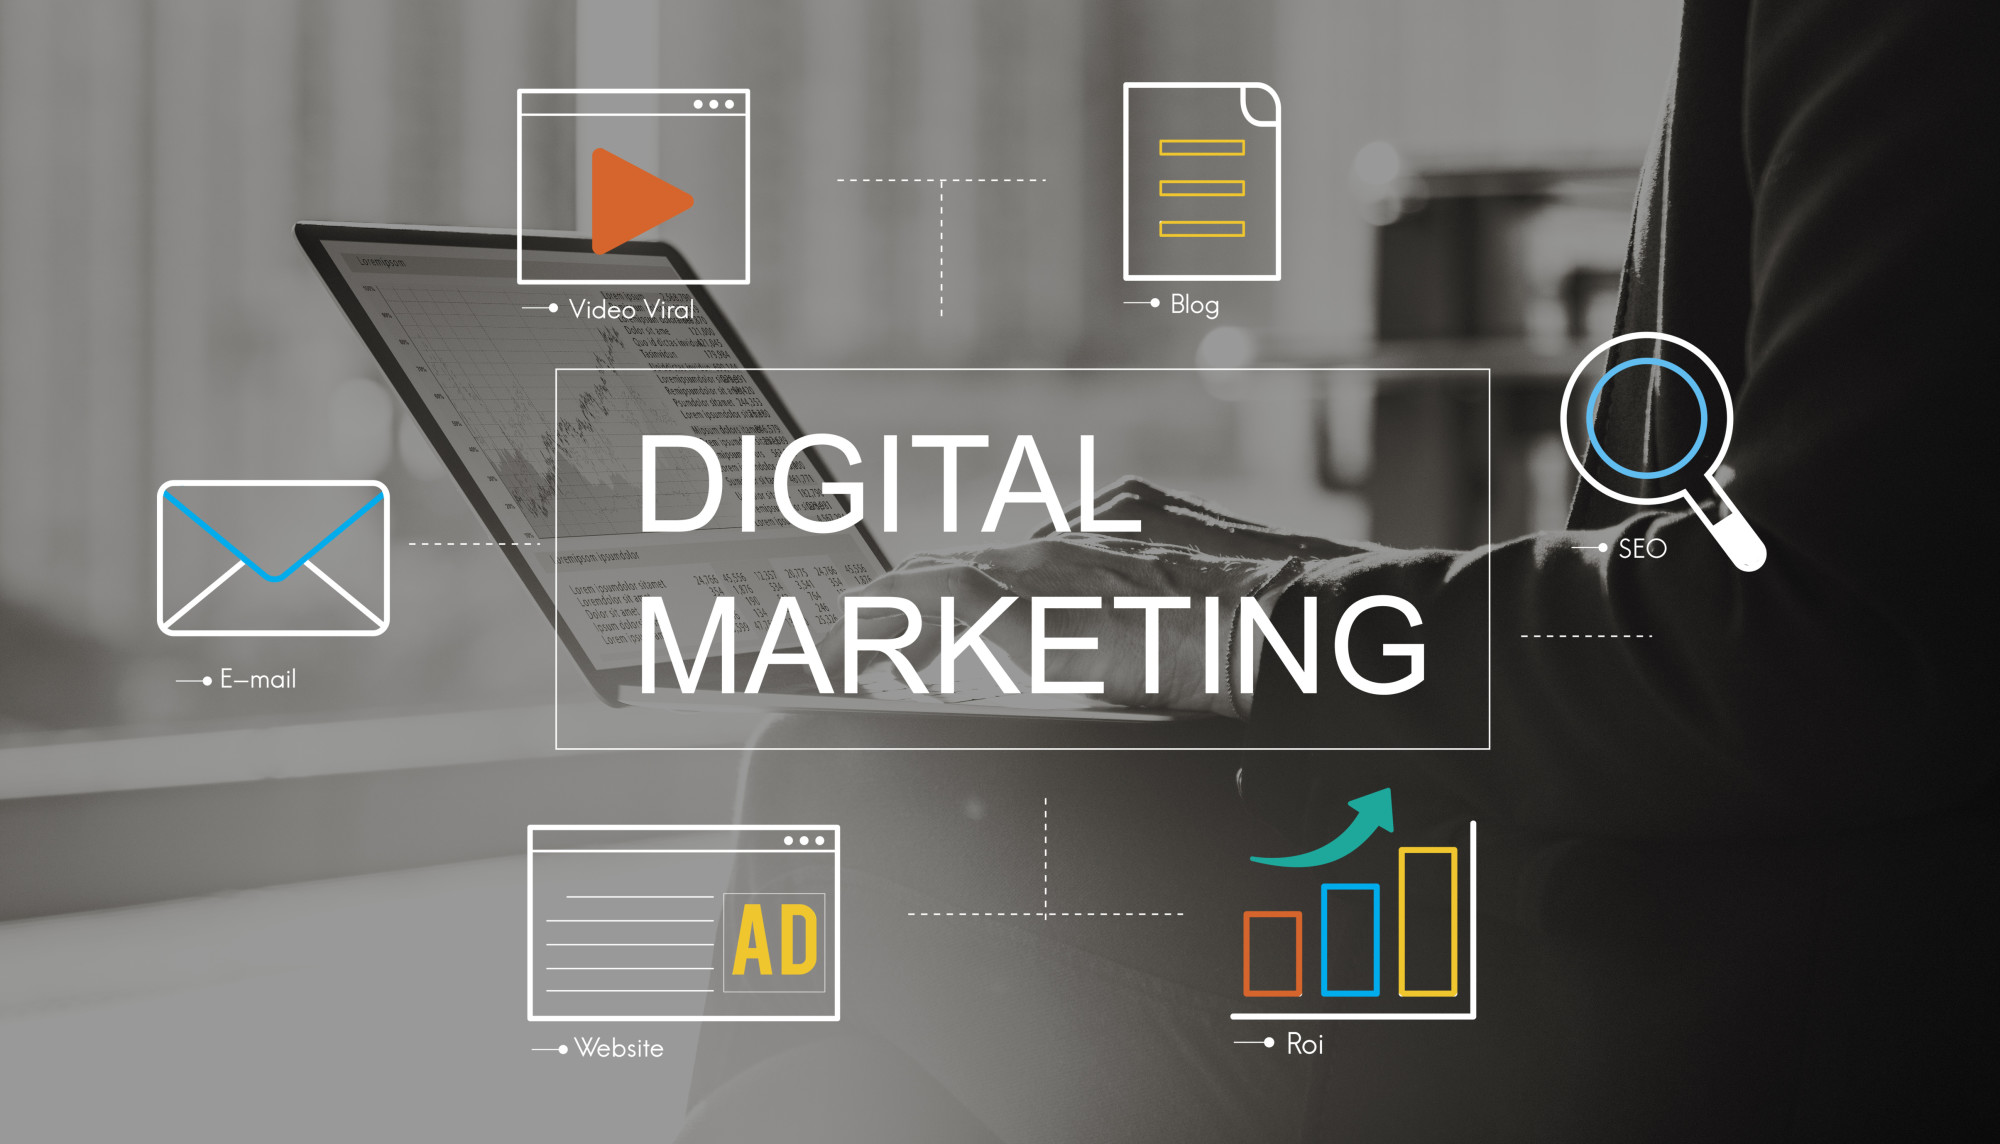 Digital Marketing Trends Visualized